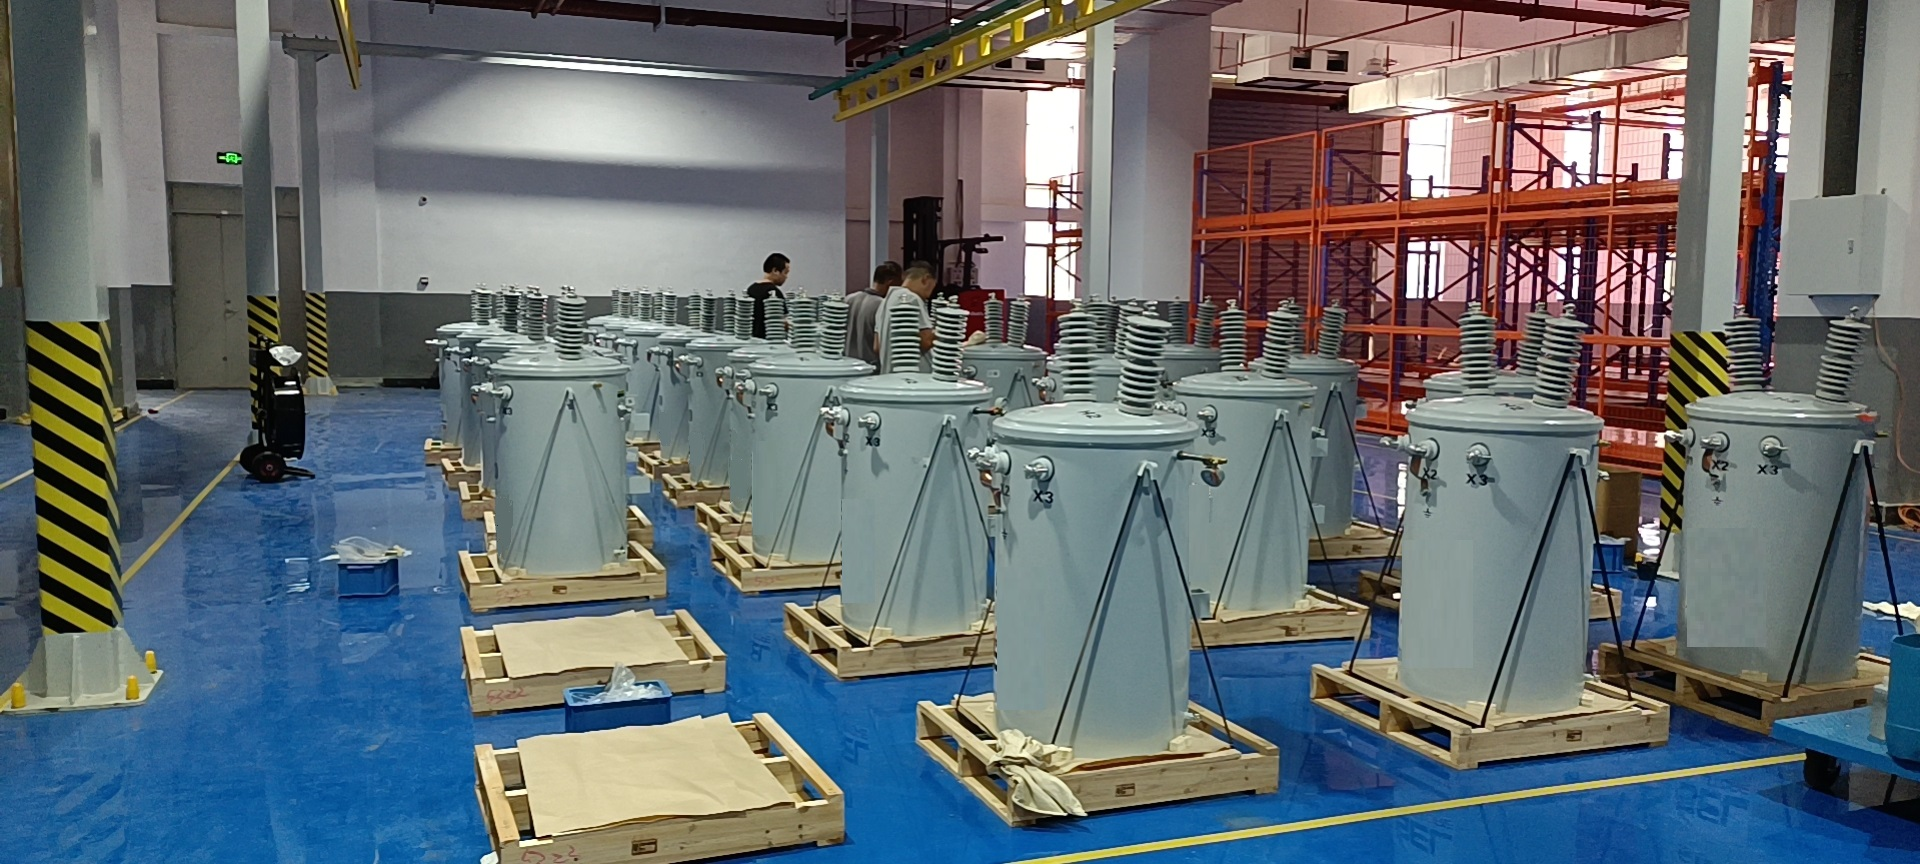 The Intelligent Manufacturing Project Of Eaglerise Pole-mounted Distribution Transformer Was Put Into Operation Smoothly